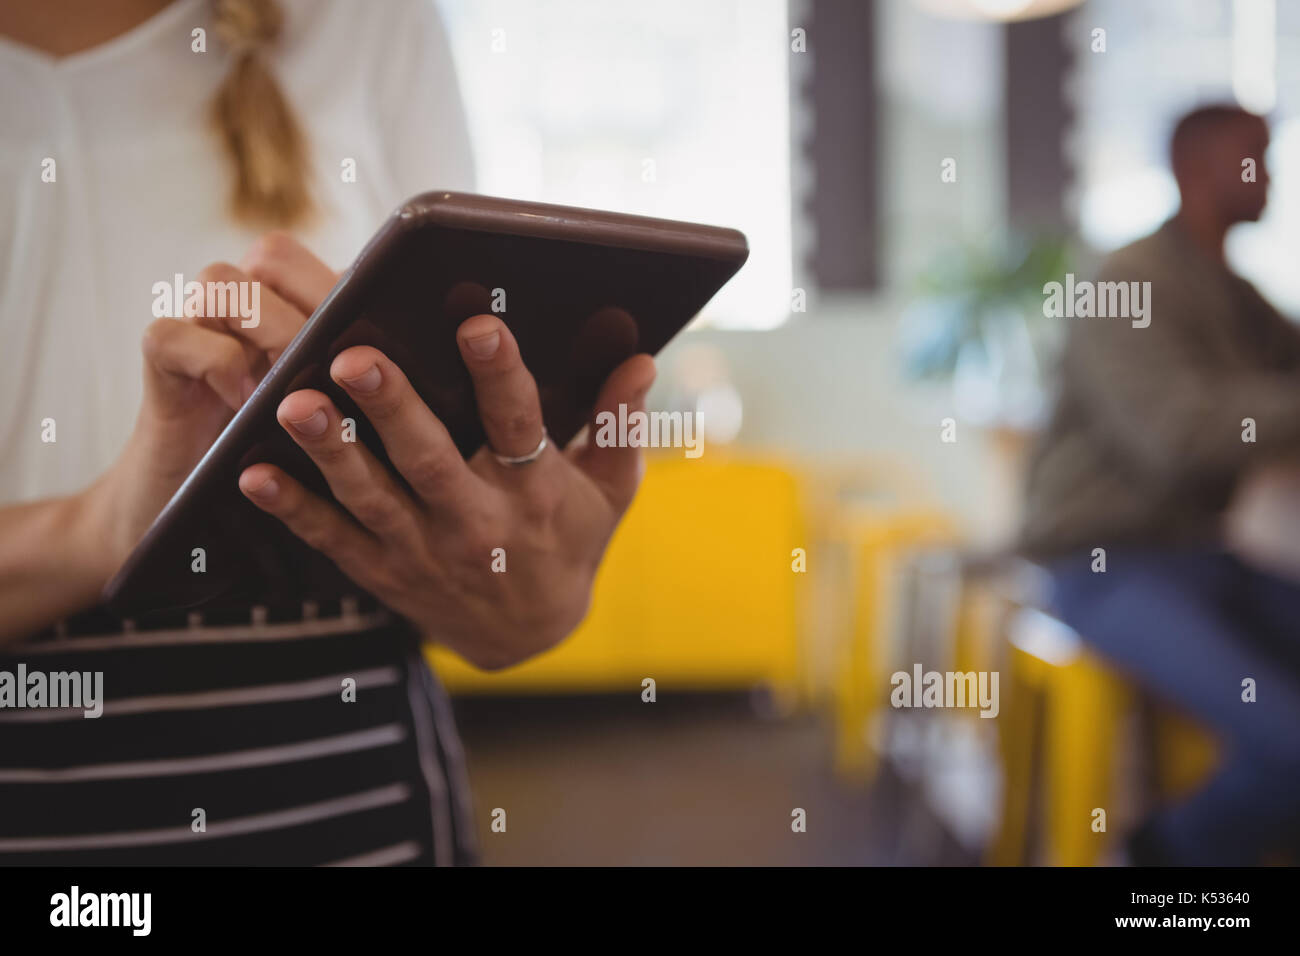 Mid section of waitress using digital tablet at cafe - Stock Image